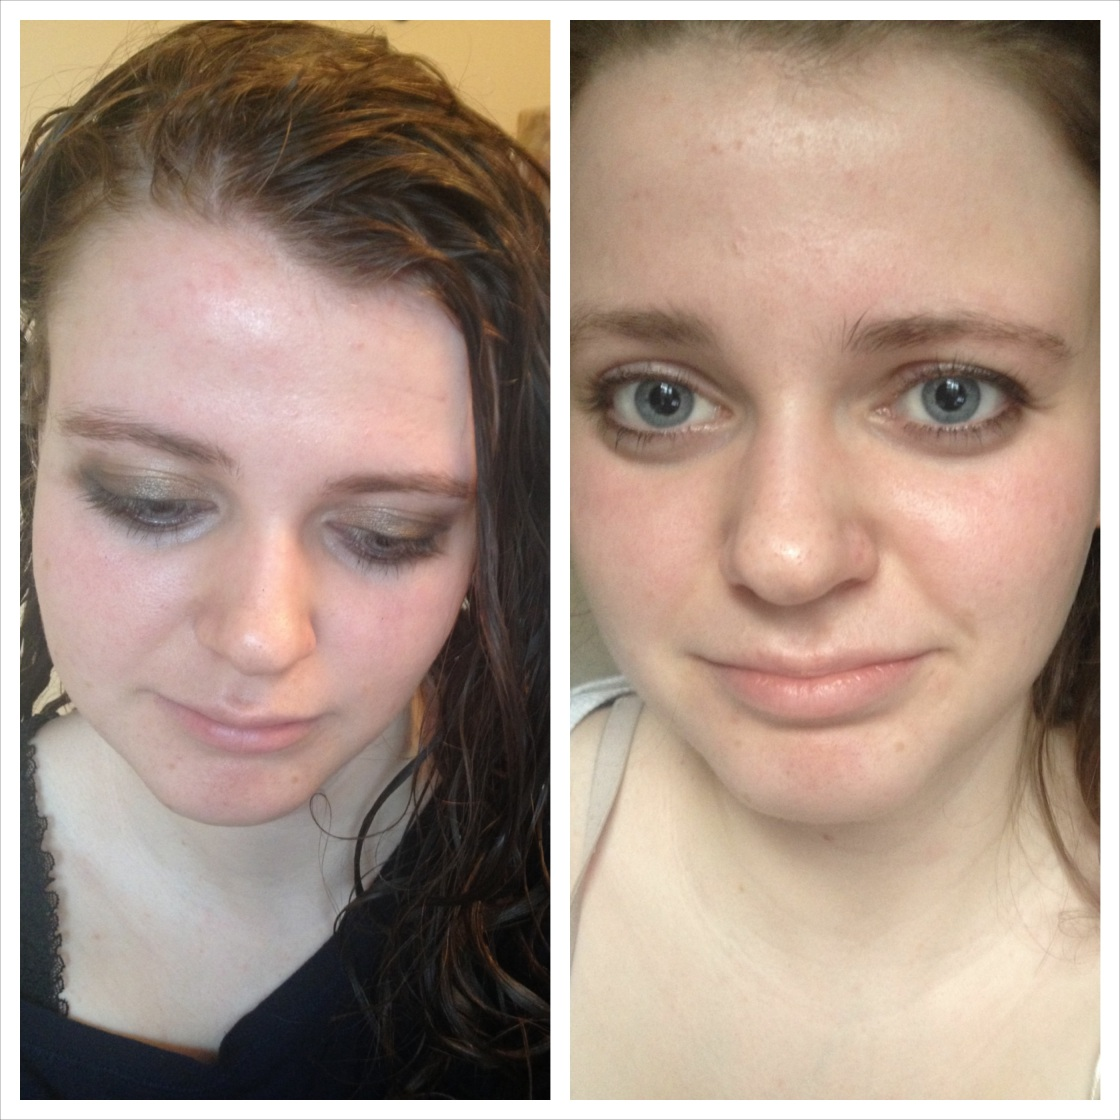 left: without face makeup when I started using right: makeupless after five months of use